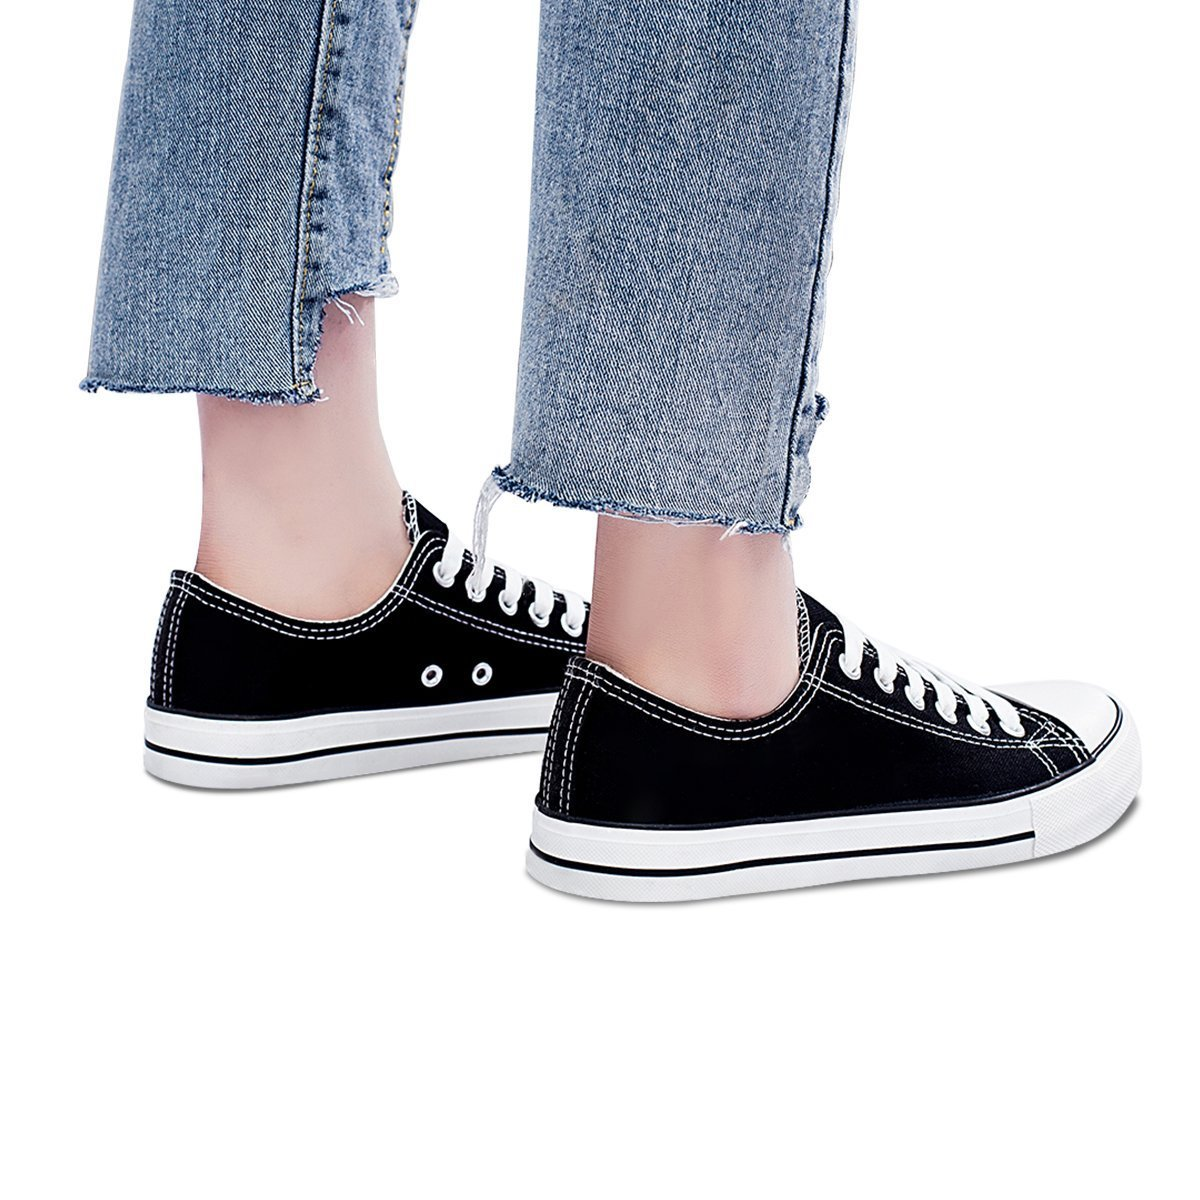 Womens Canvas Sneakers Low Cut Lace Ups Casual Walking Shoes(Black,US7)